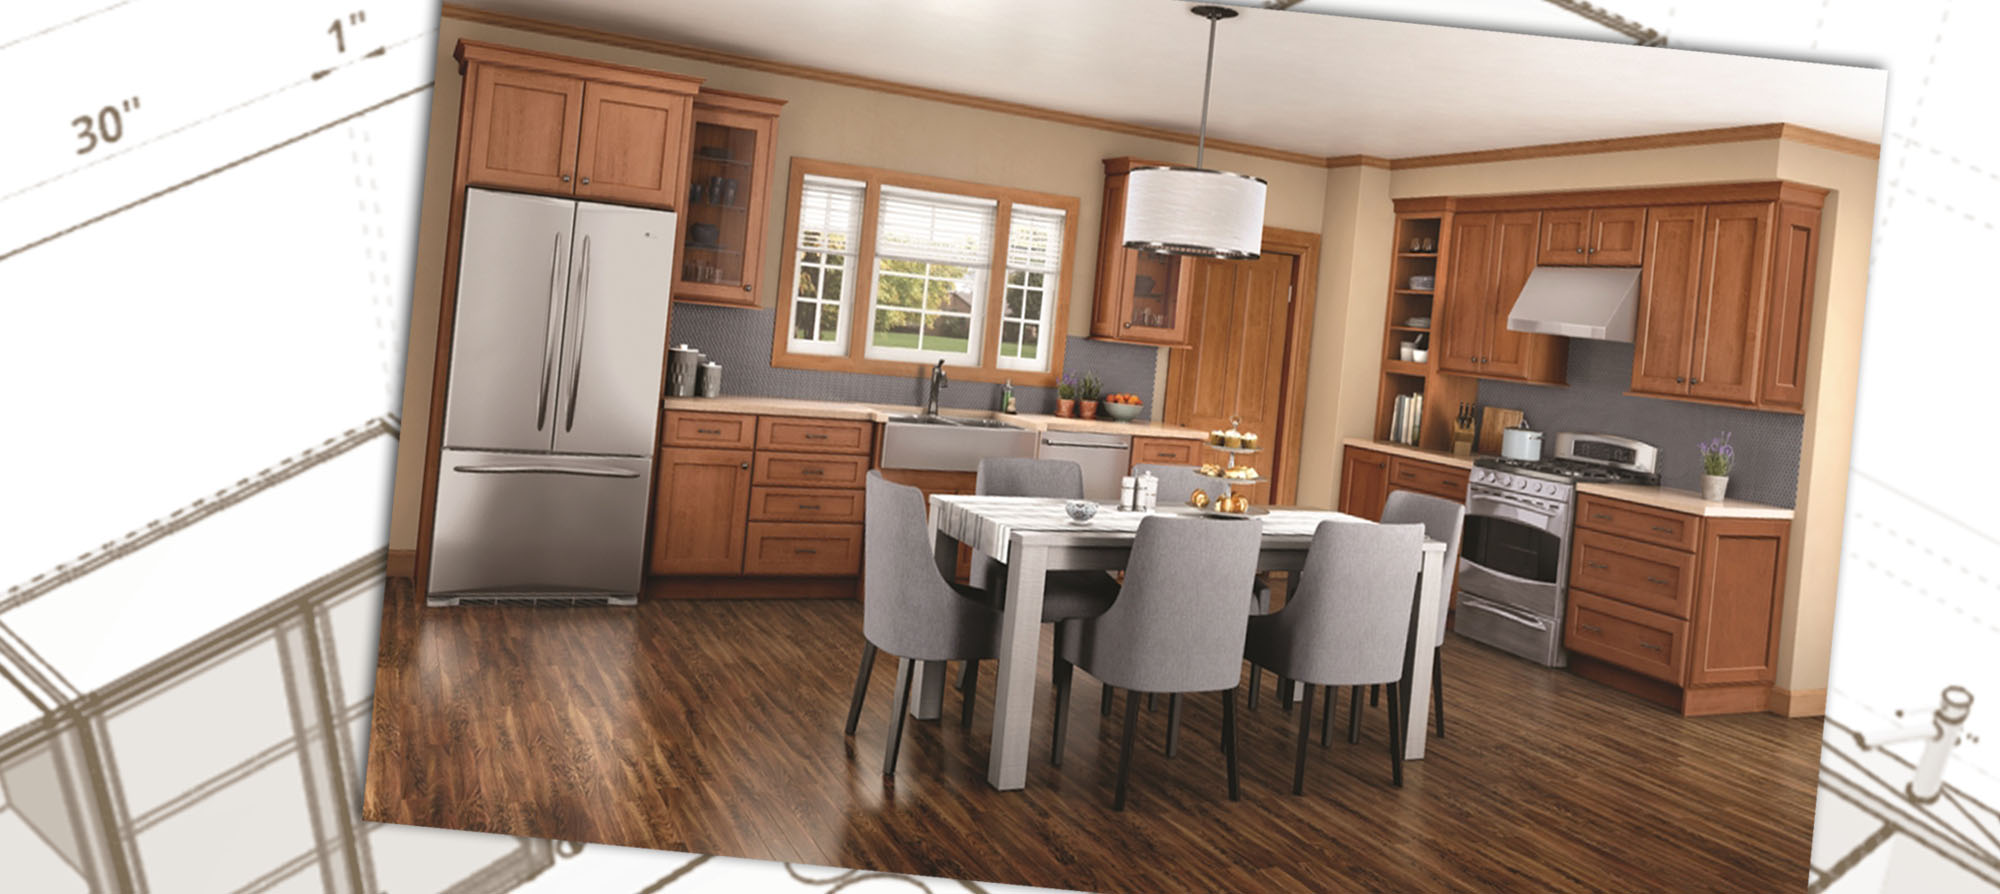 floor plan kitchen design